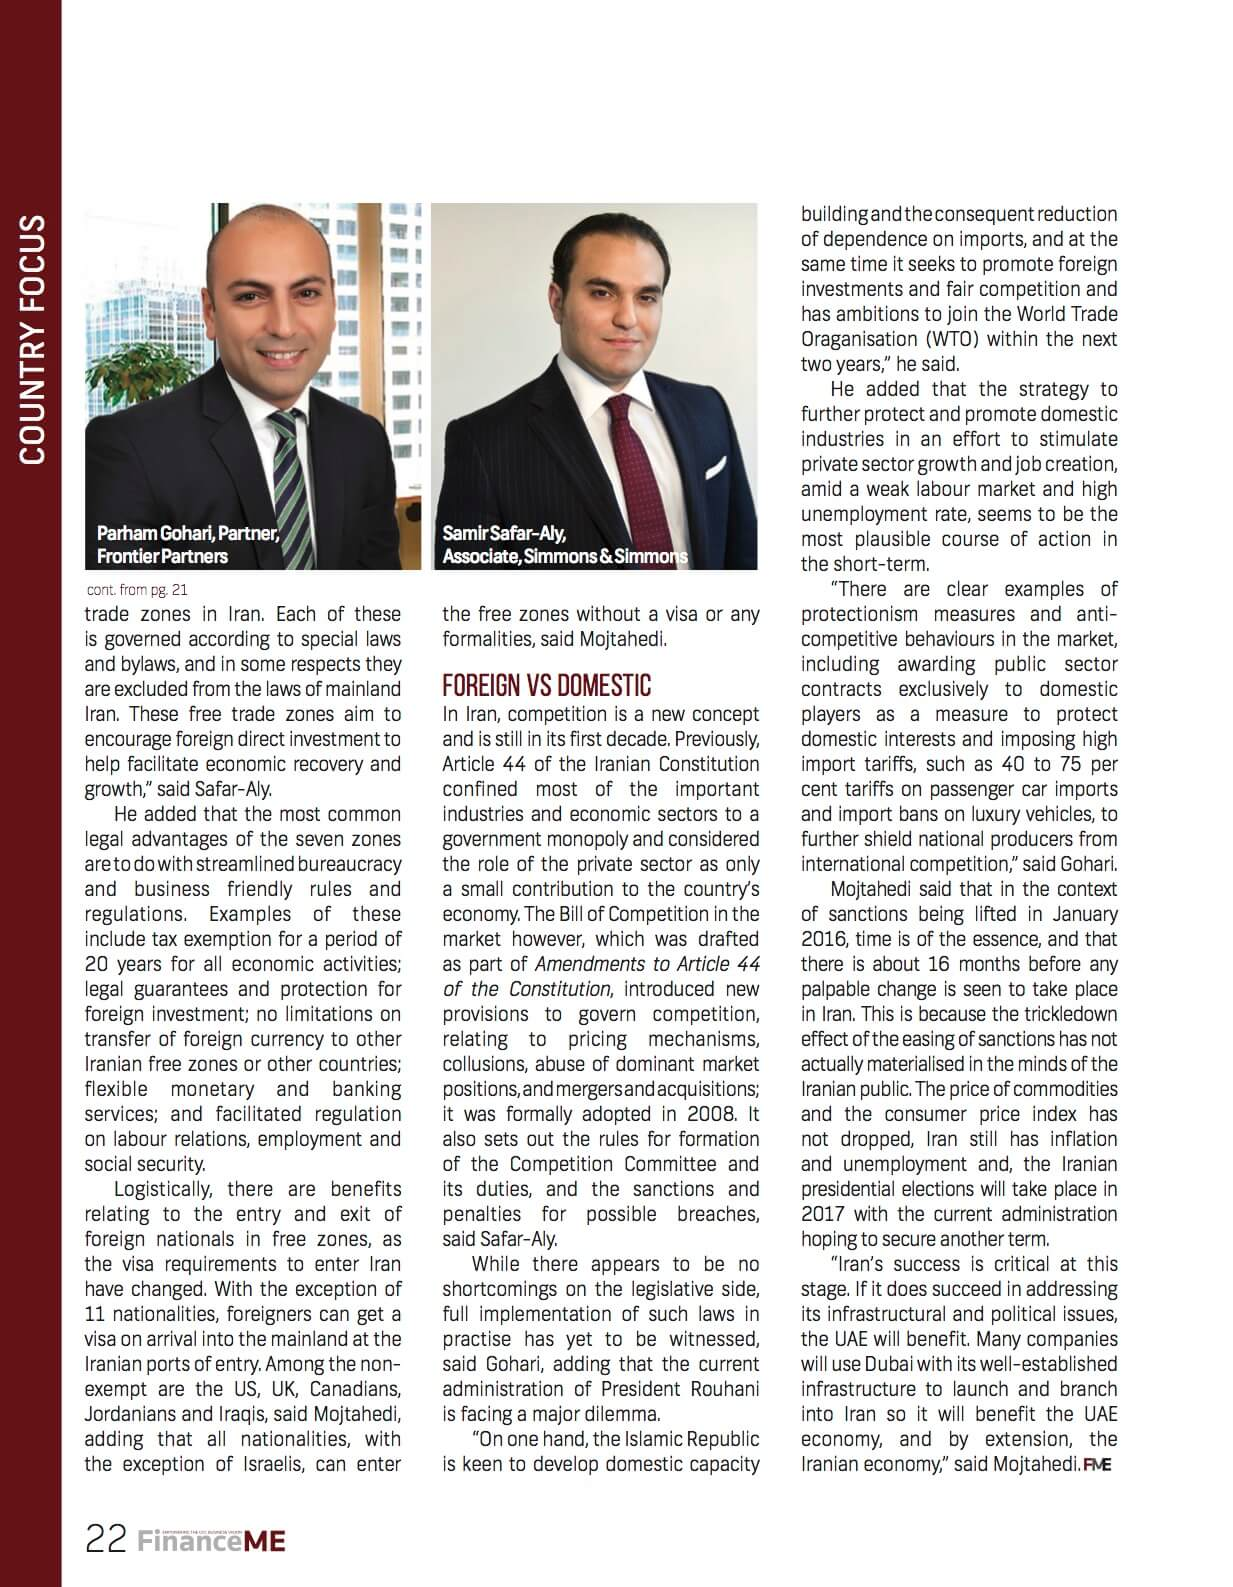 Frontier Partners - Finance ME - Page 22